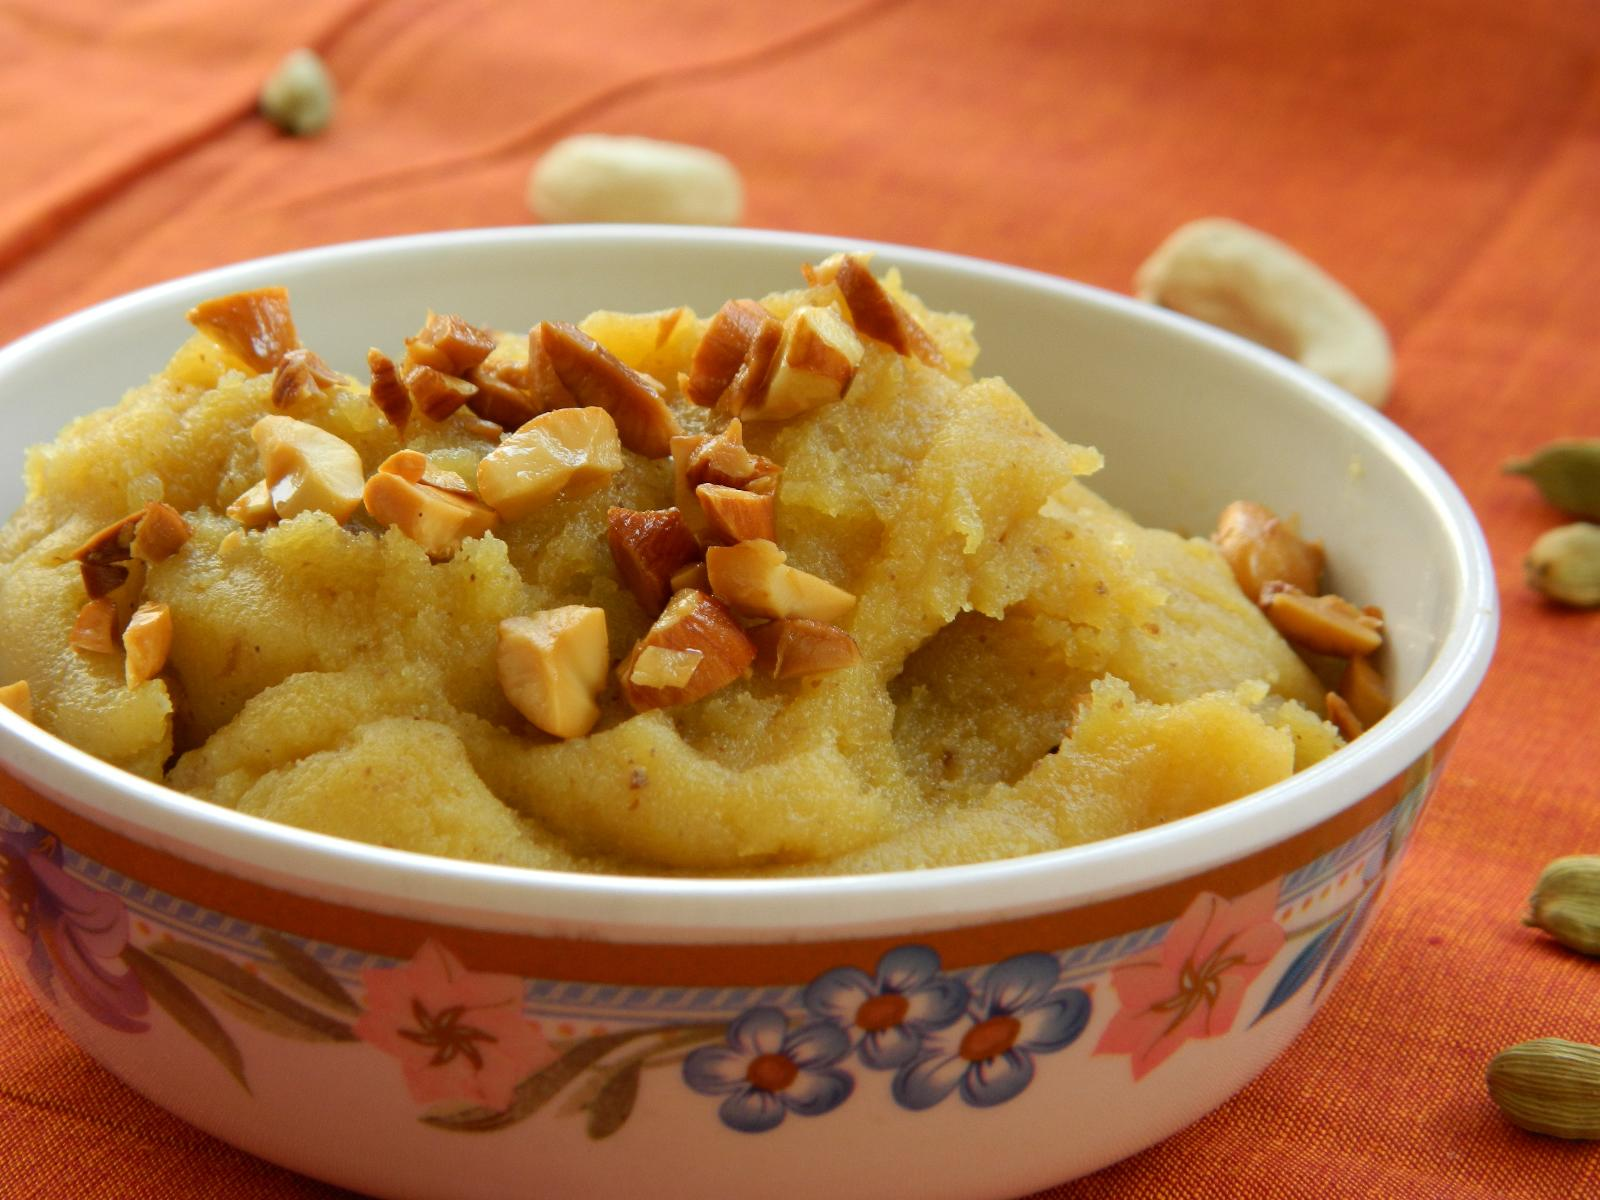 besan halwa recipe, how to make besan halwa, chickpea flour halwa, besan ka halwa recipe